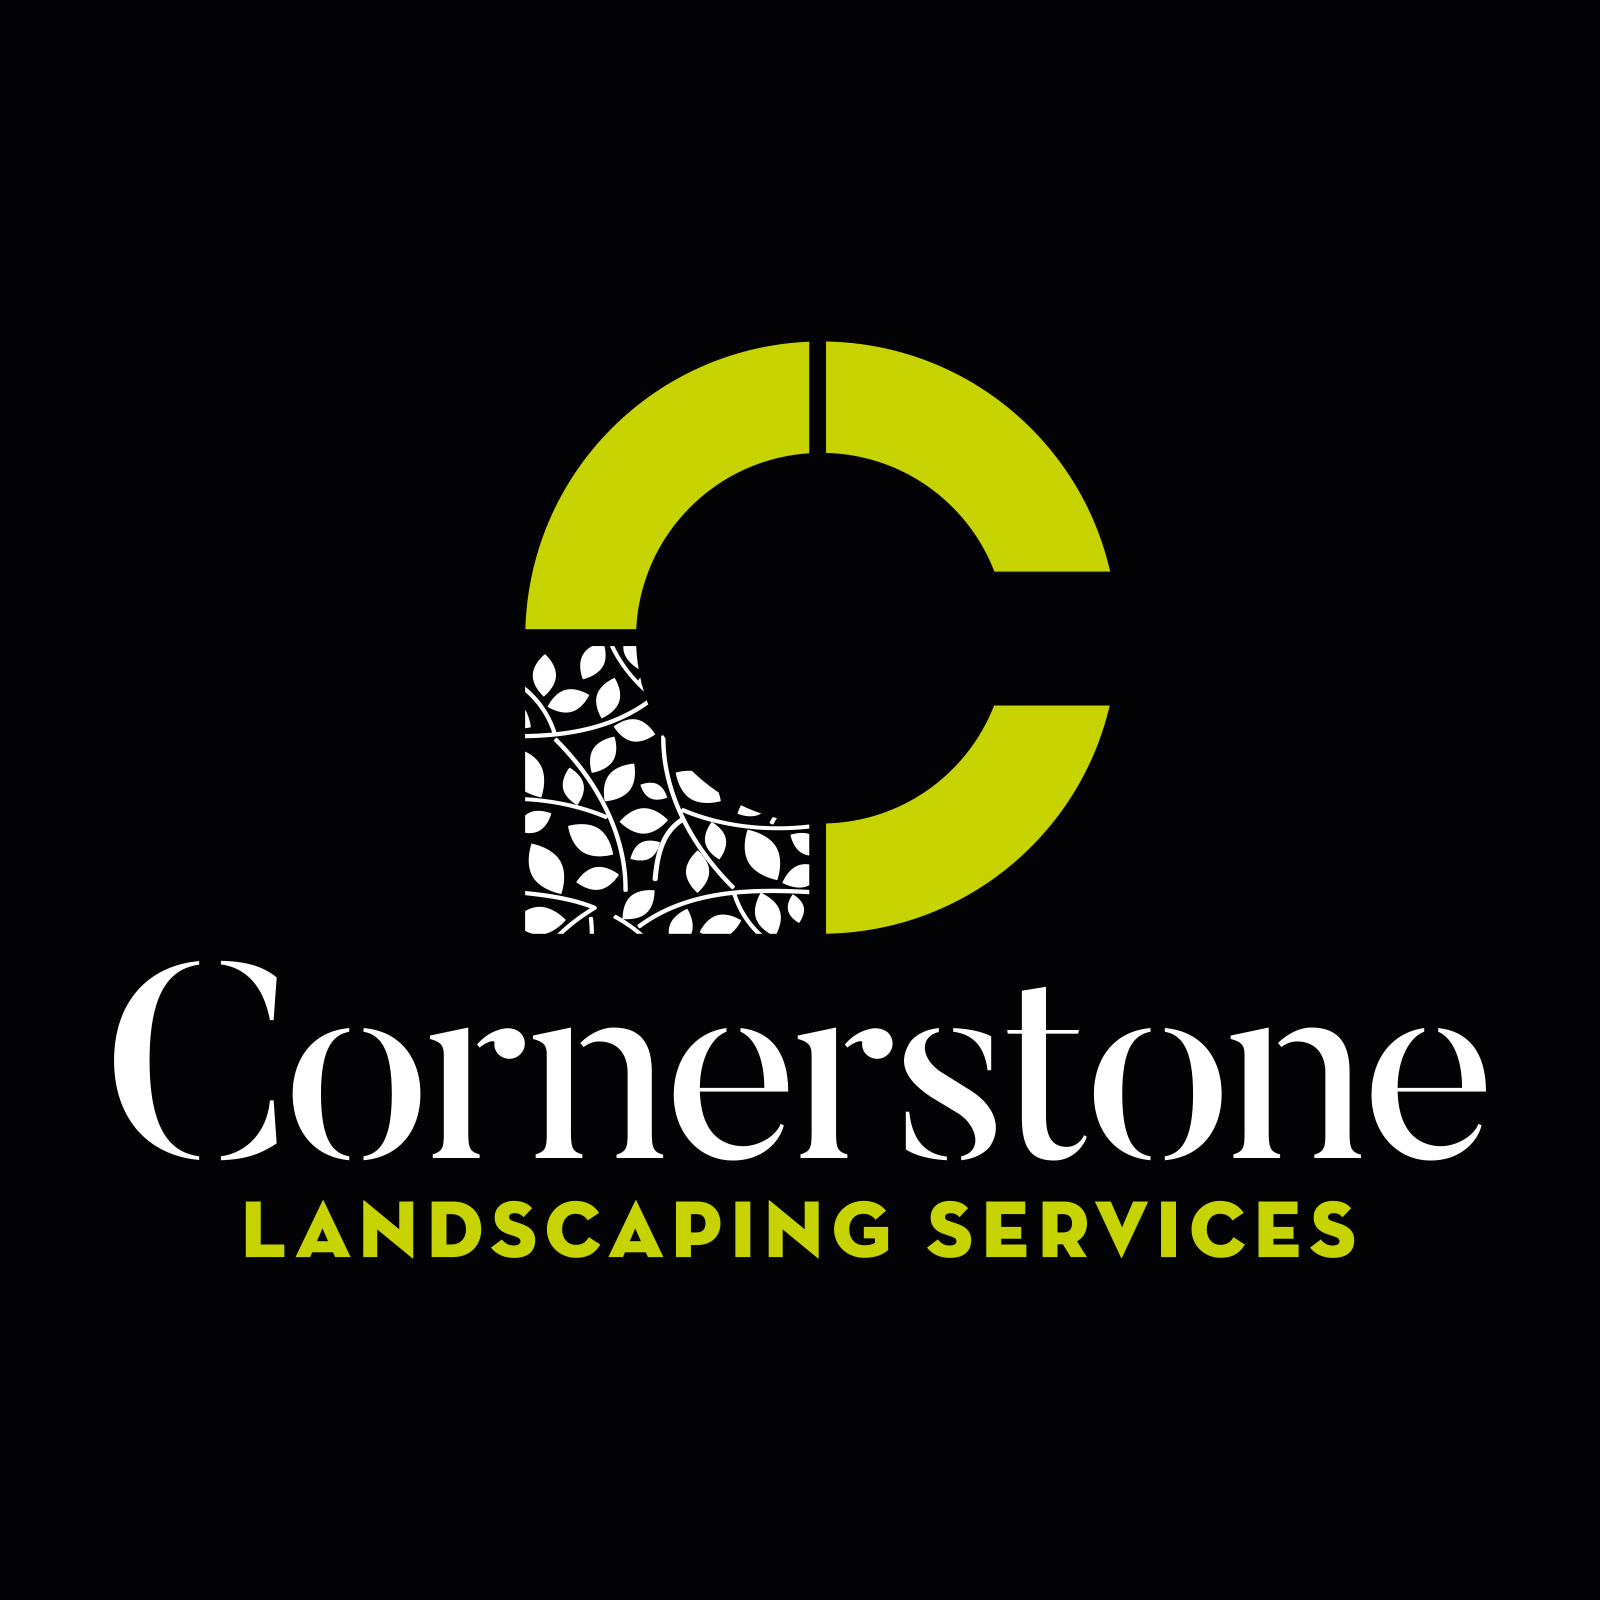 CORNERSTONE LANDSCAPING SERVICES LTD